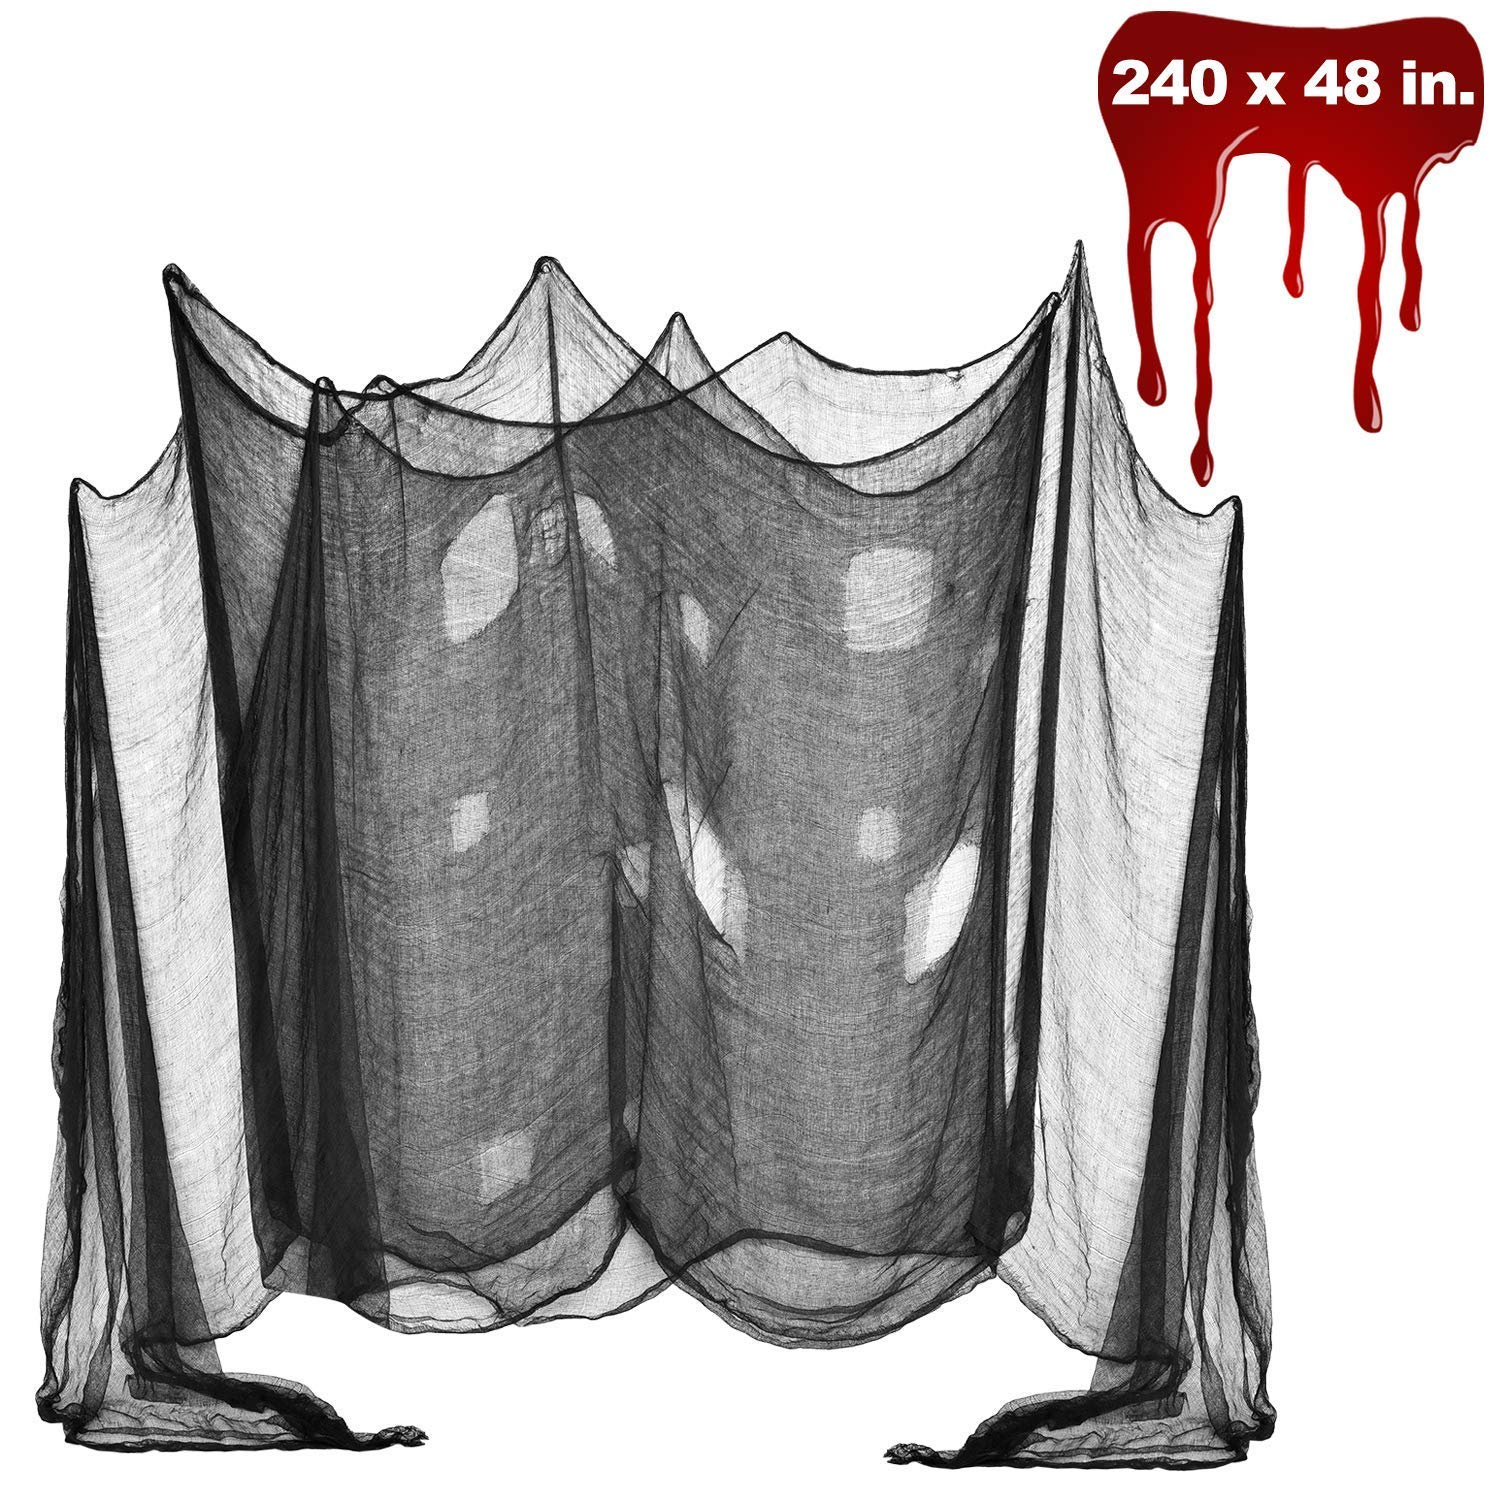 Halloween Creepy Cloth, DealKits Spooky Giant (48 x 240 in.) Cheese Cloth Tapestry for Halloween Party Supplies Decorations Outdoor Yard Home Wall Decor, Black by DealKits (Image #1)